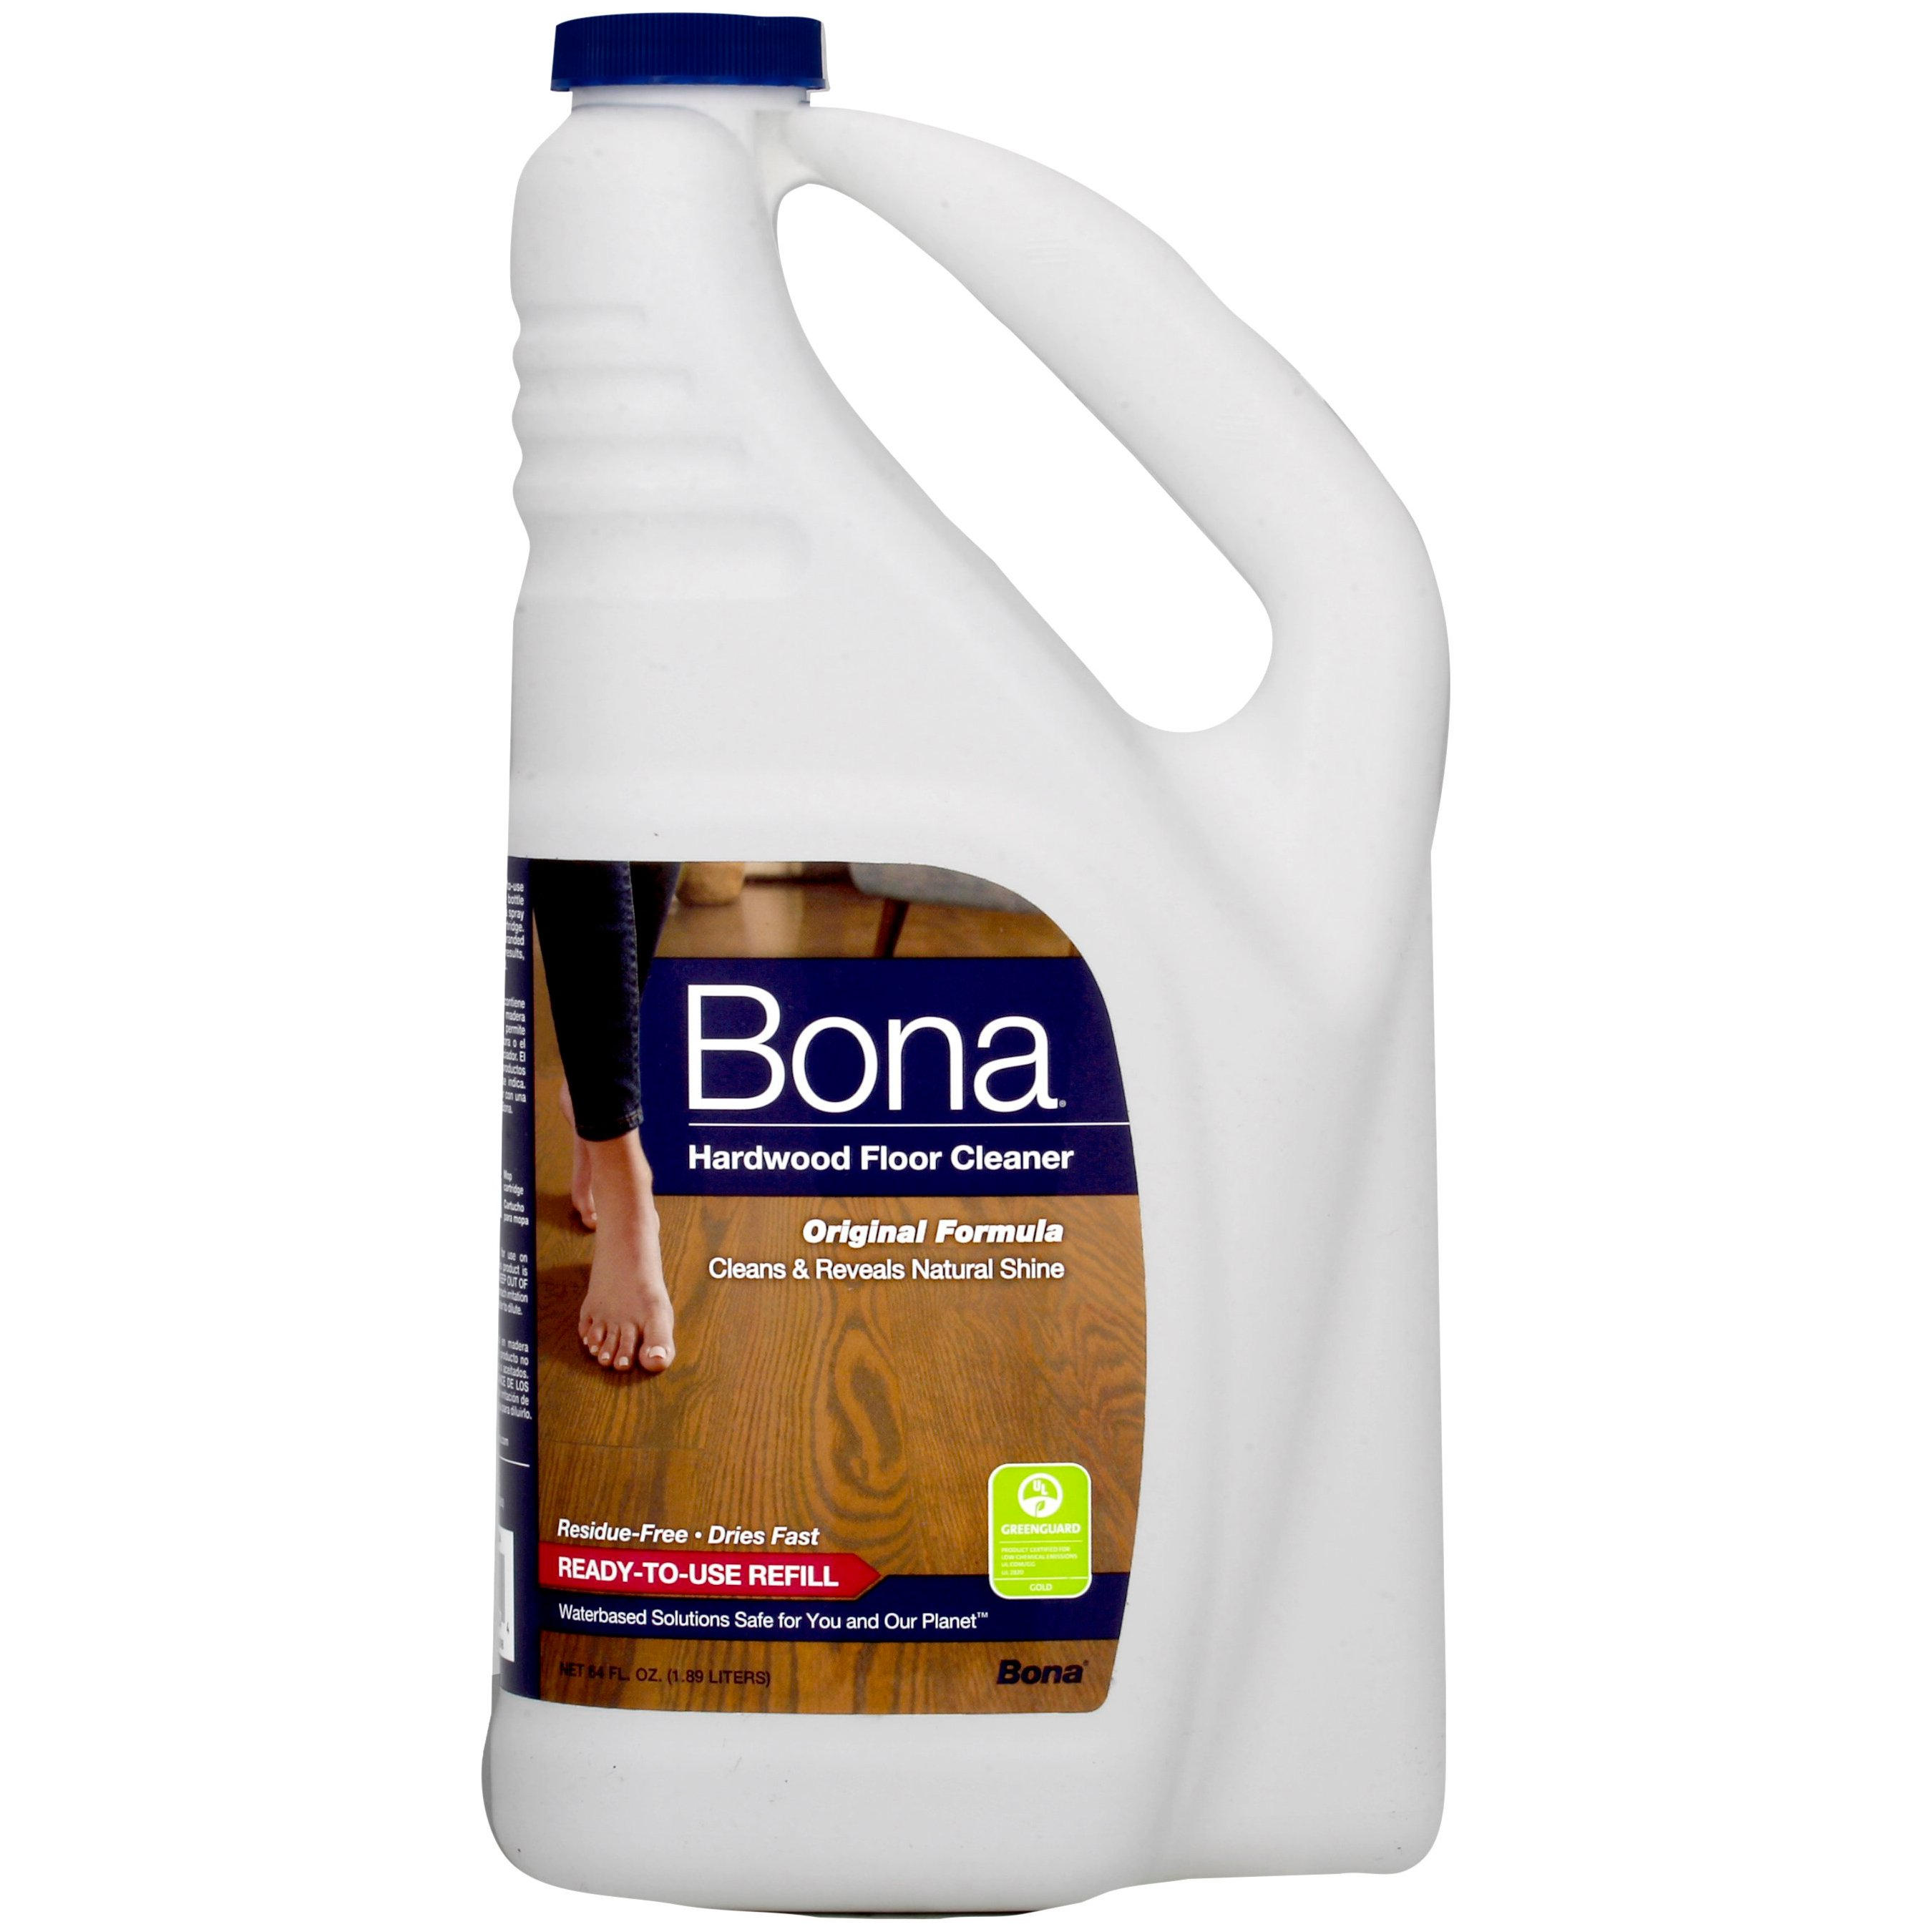 bona floor cleaner msds meze blog With msds bona hardwood floor cleaner